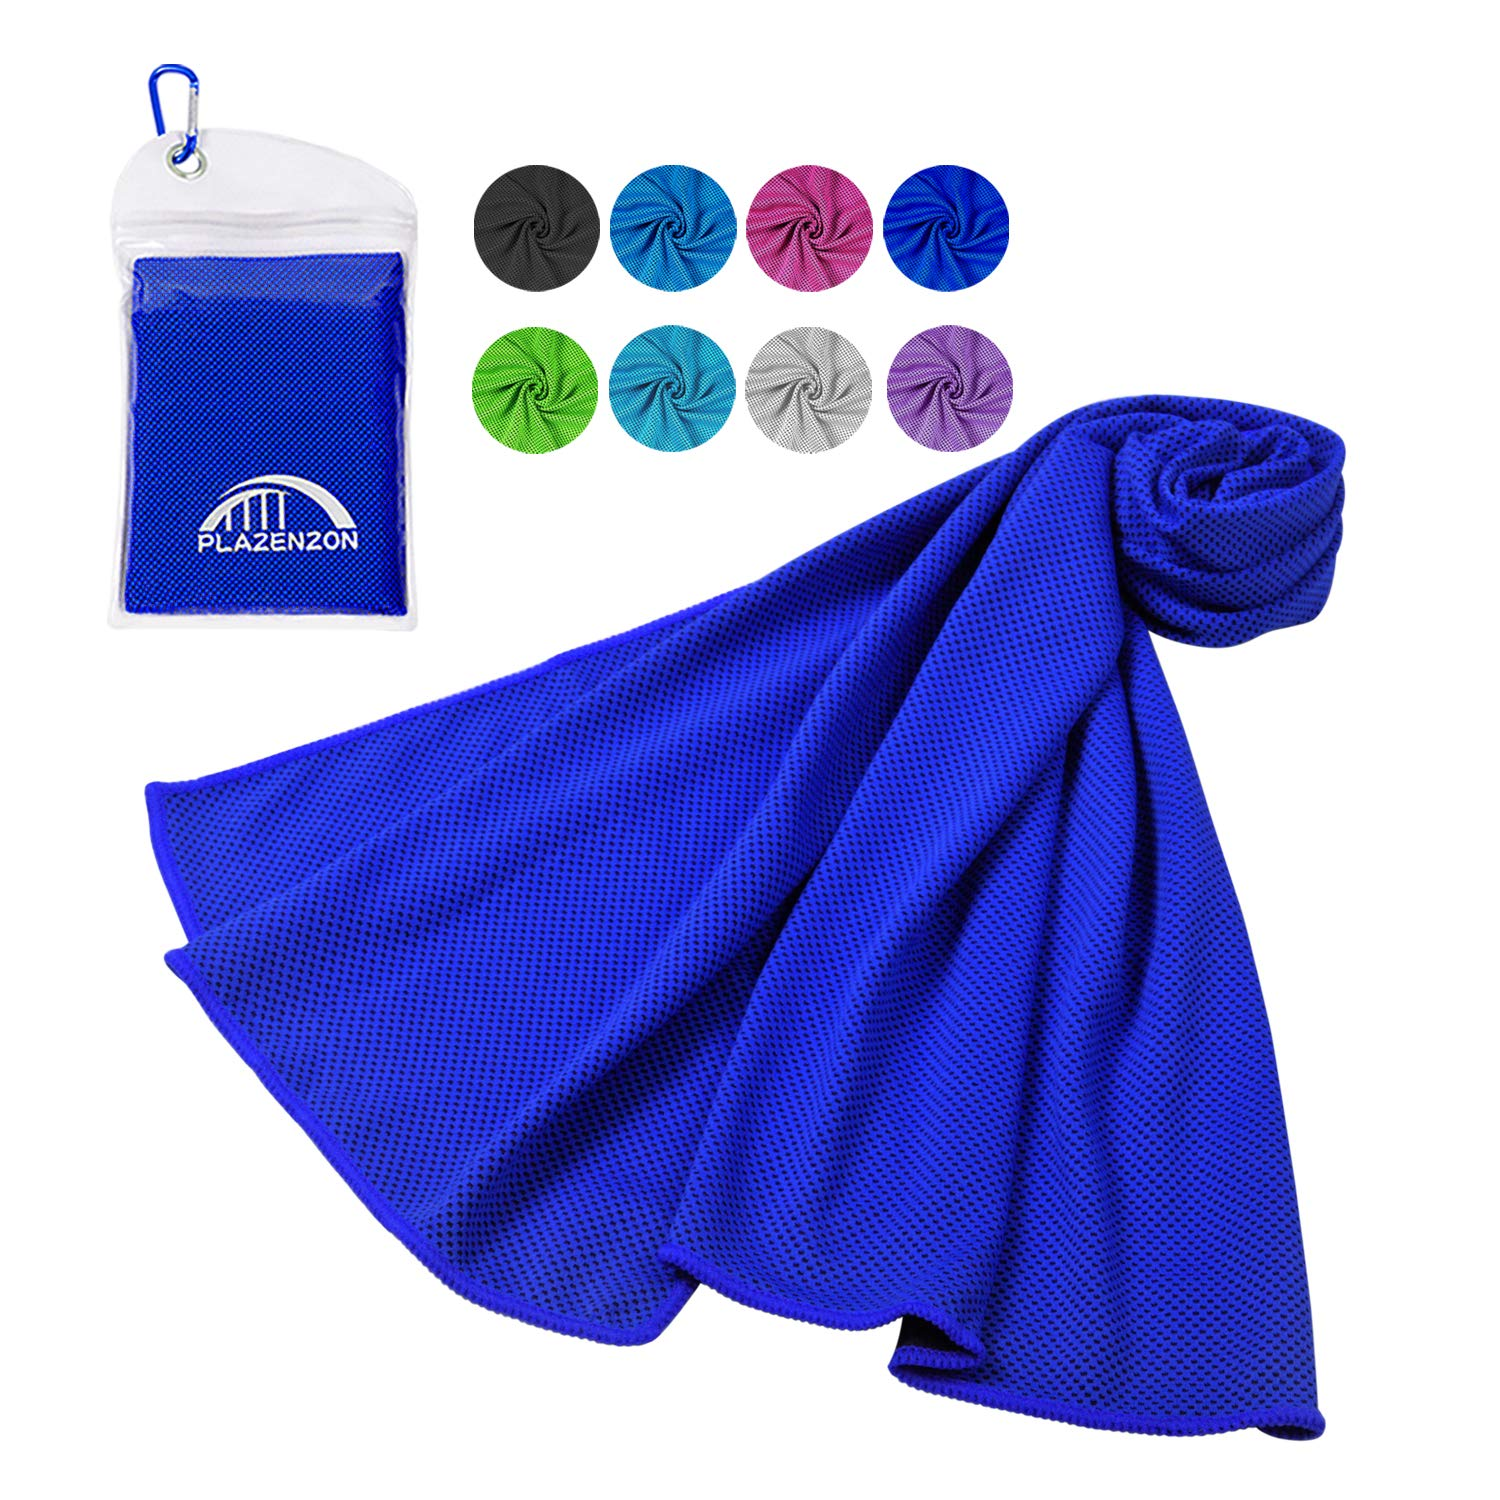 Plazenzon Cooling Towel (47 x 12 Inch), Longer Instant Relief Cool Towel, Use as Cooling Neck Wrap, Soft Breathable Chilly Towel for Golf Athletes Gym Travel Camp Workout